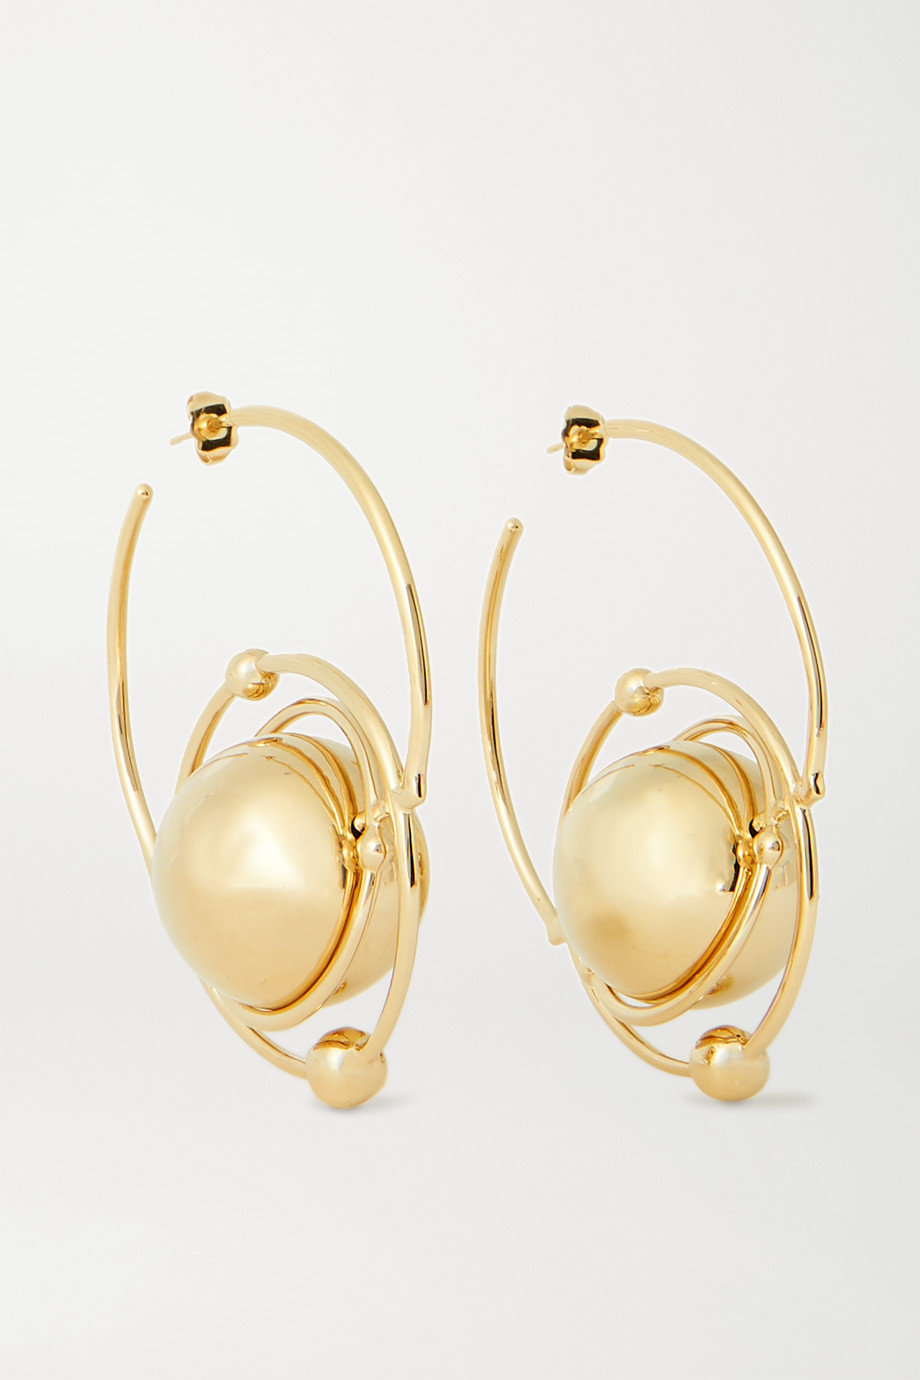 Paco Rabanne Saturn Creole gold-tone hoop earrings